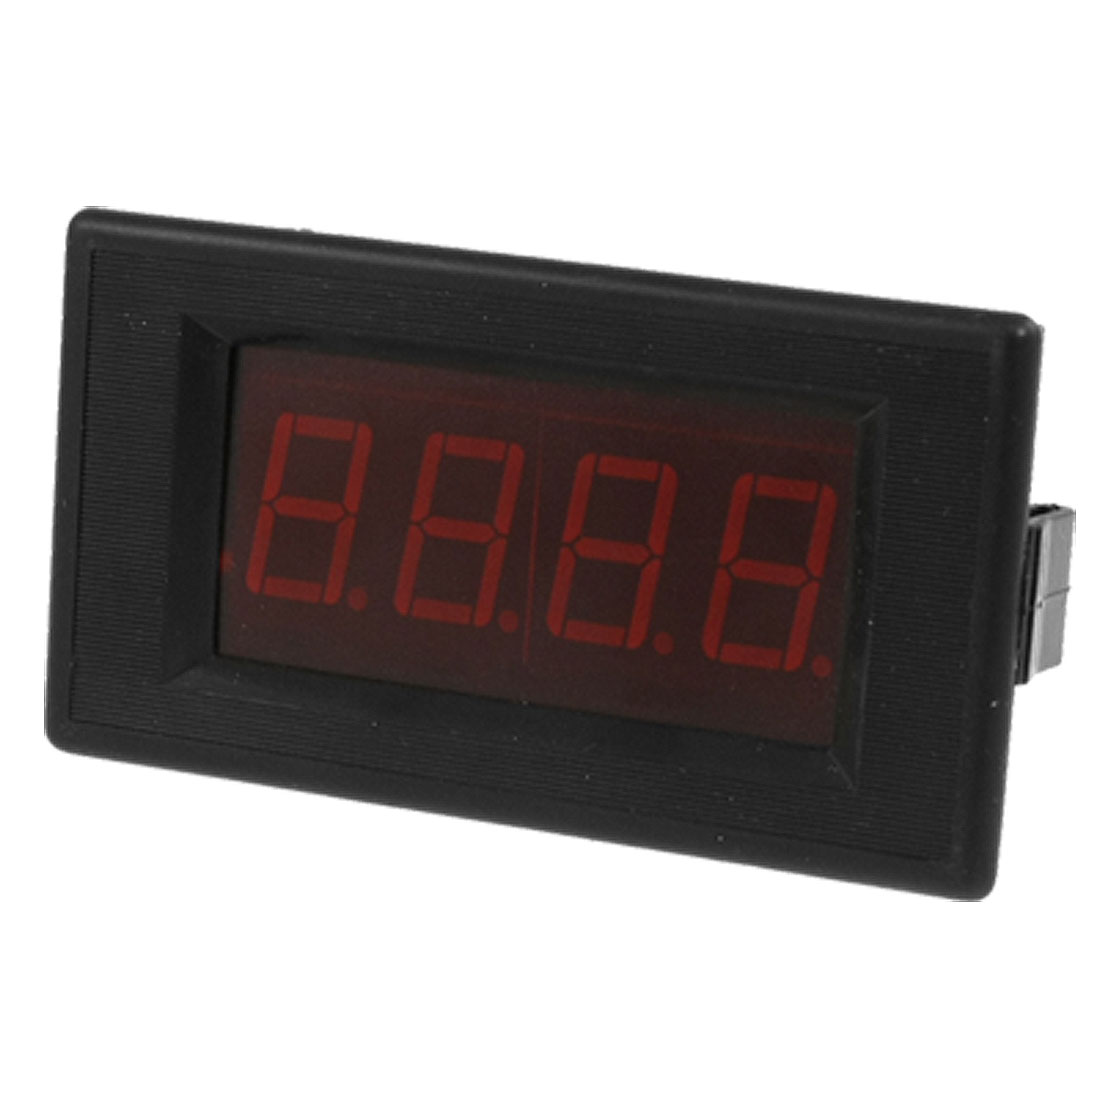 LED Digital Display 0-200 Ohm 3 1/2 Panel Mounting Ohmmeter Gauge